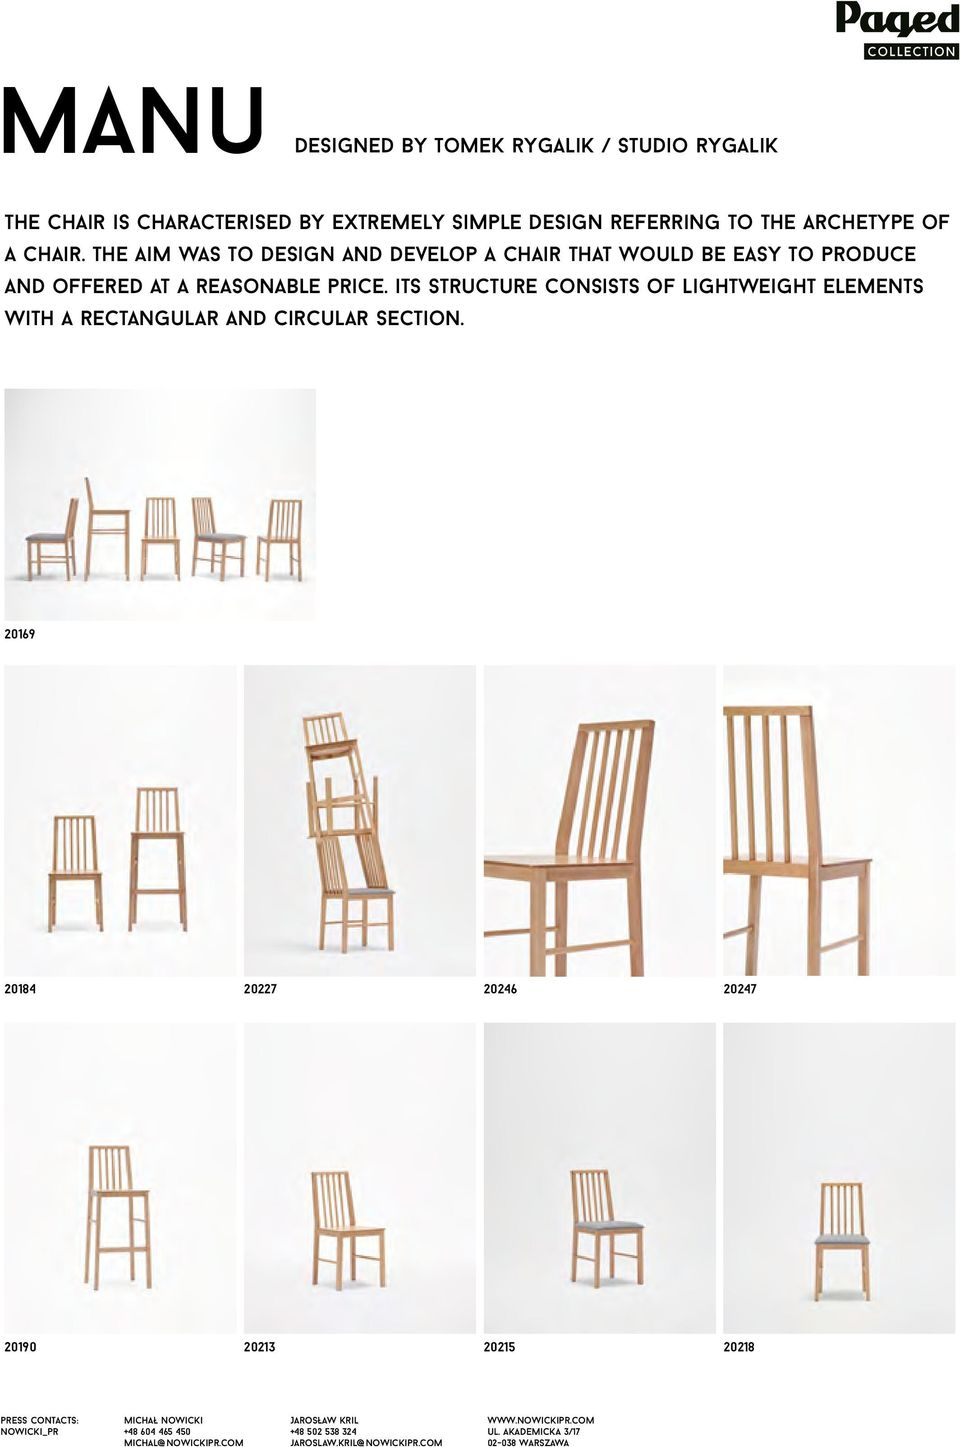 the aim was to design and develop a chair that would be easy to produce and offered at a